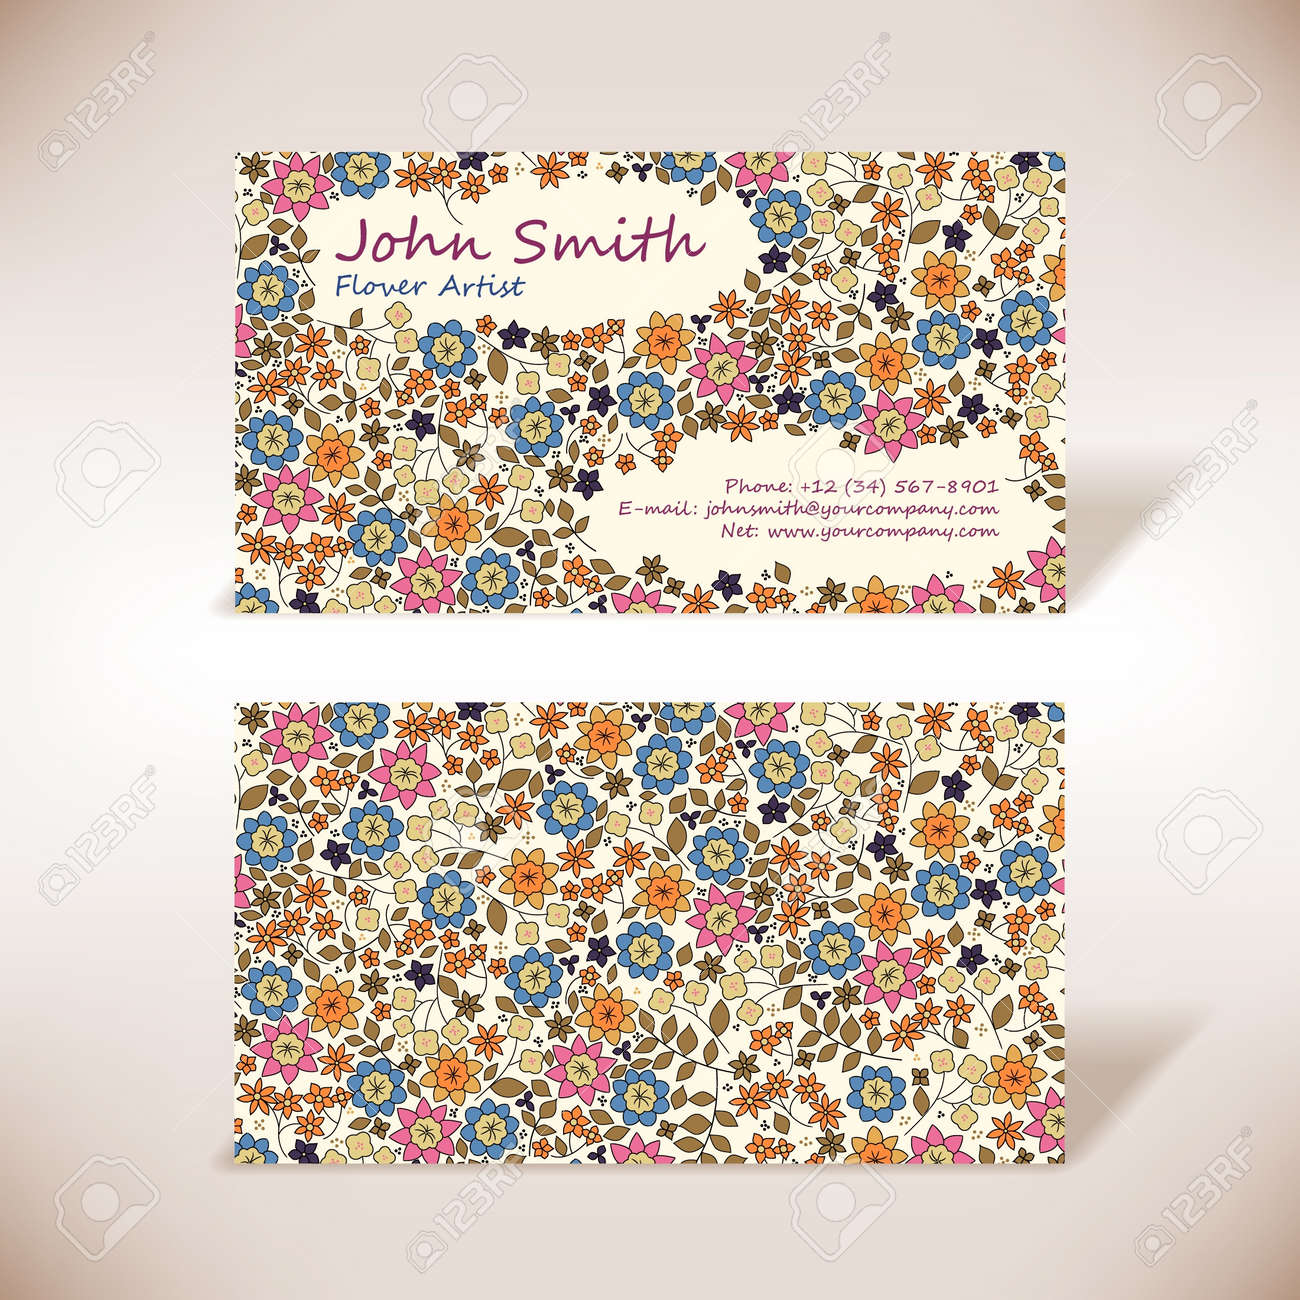 Small flowers business-card - 14559622